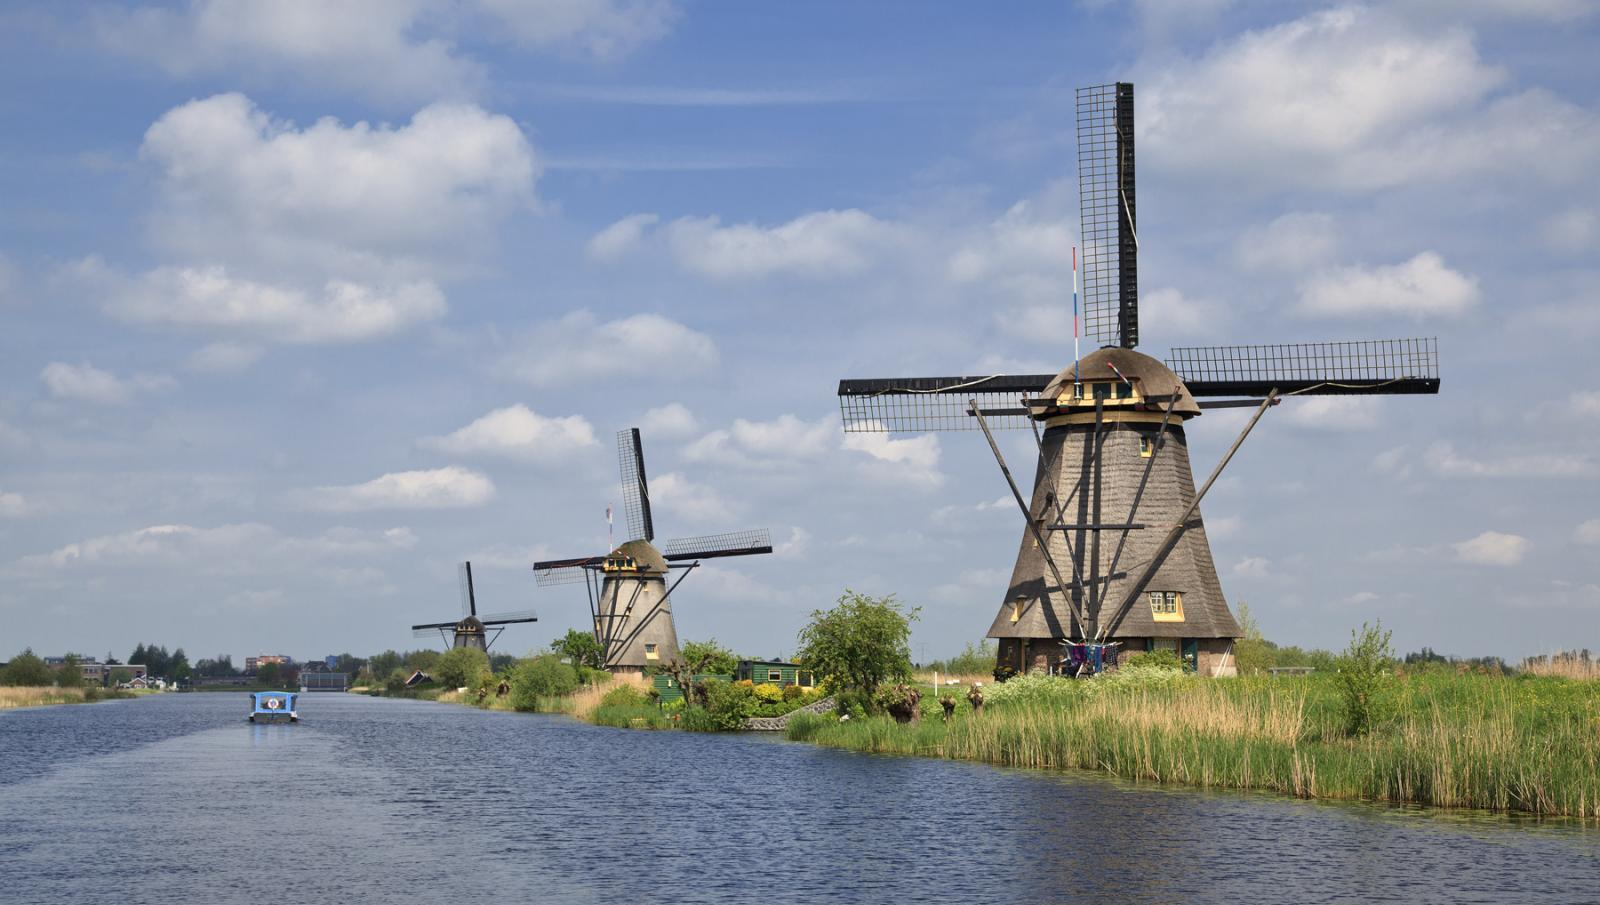 The famous mills at Kinderdijk